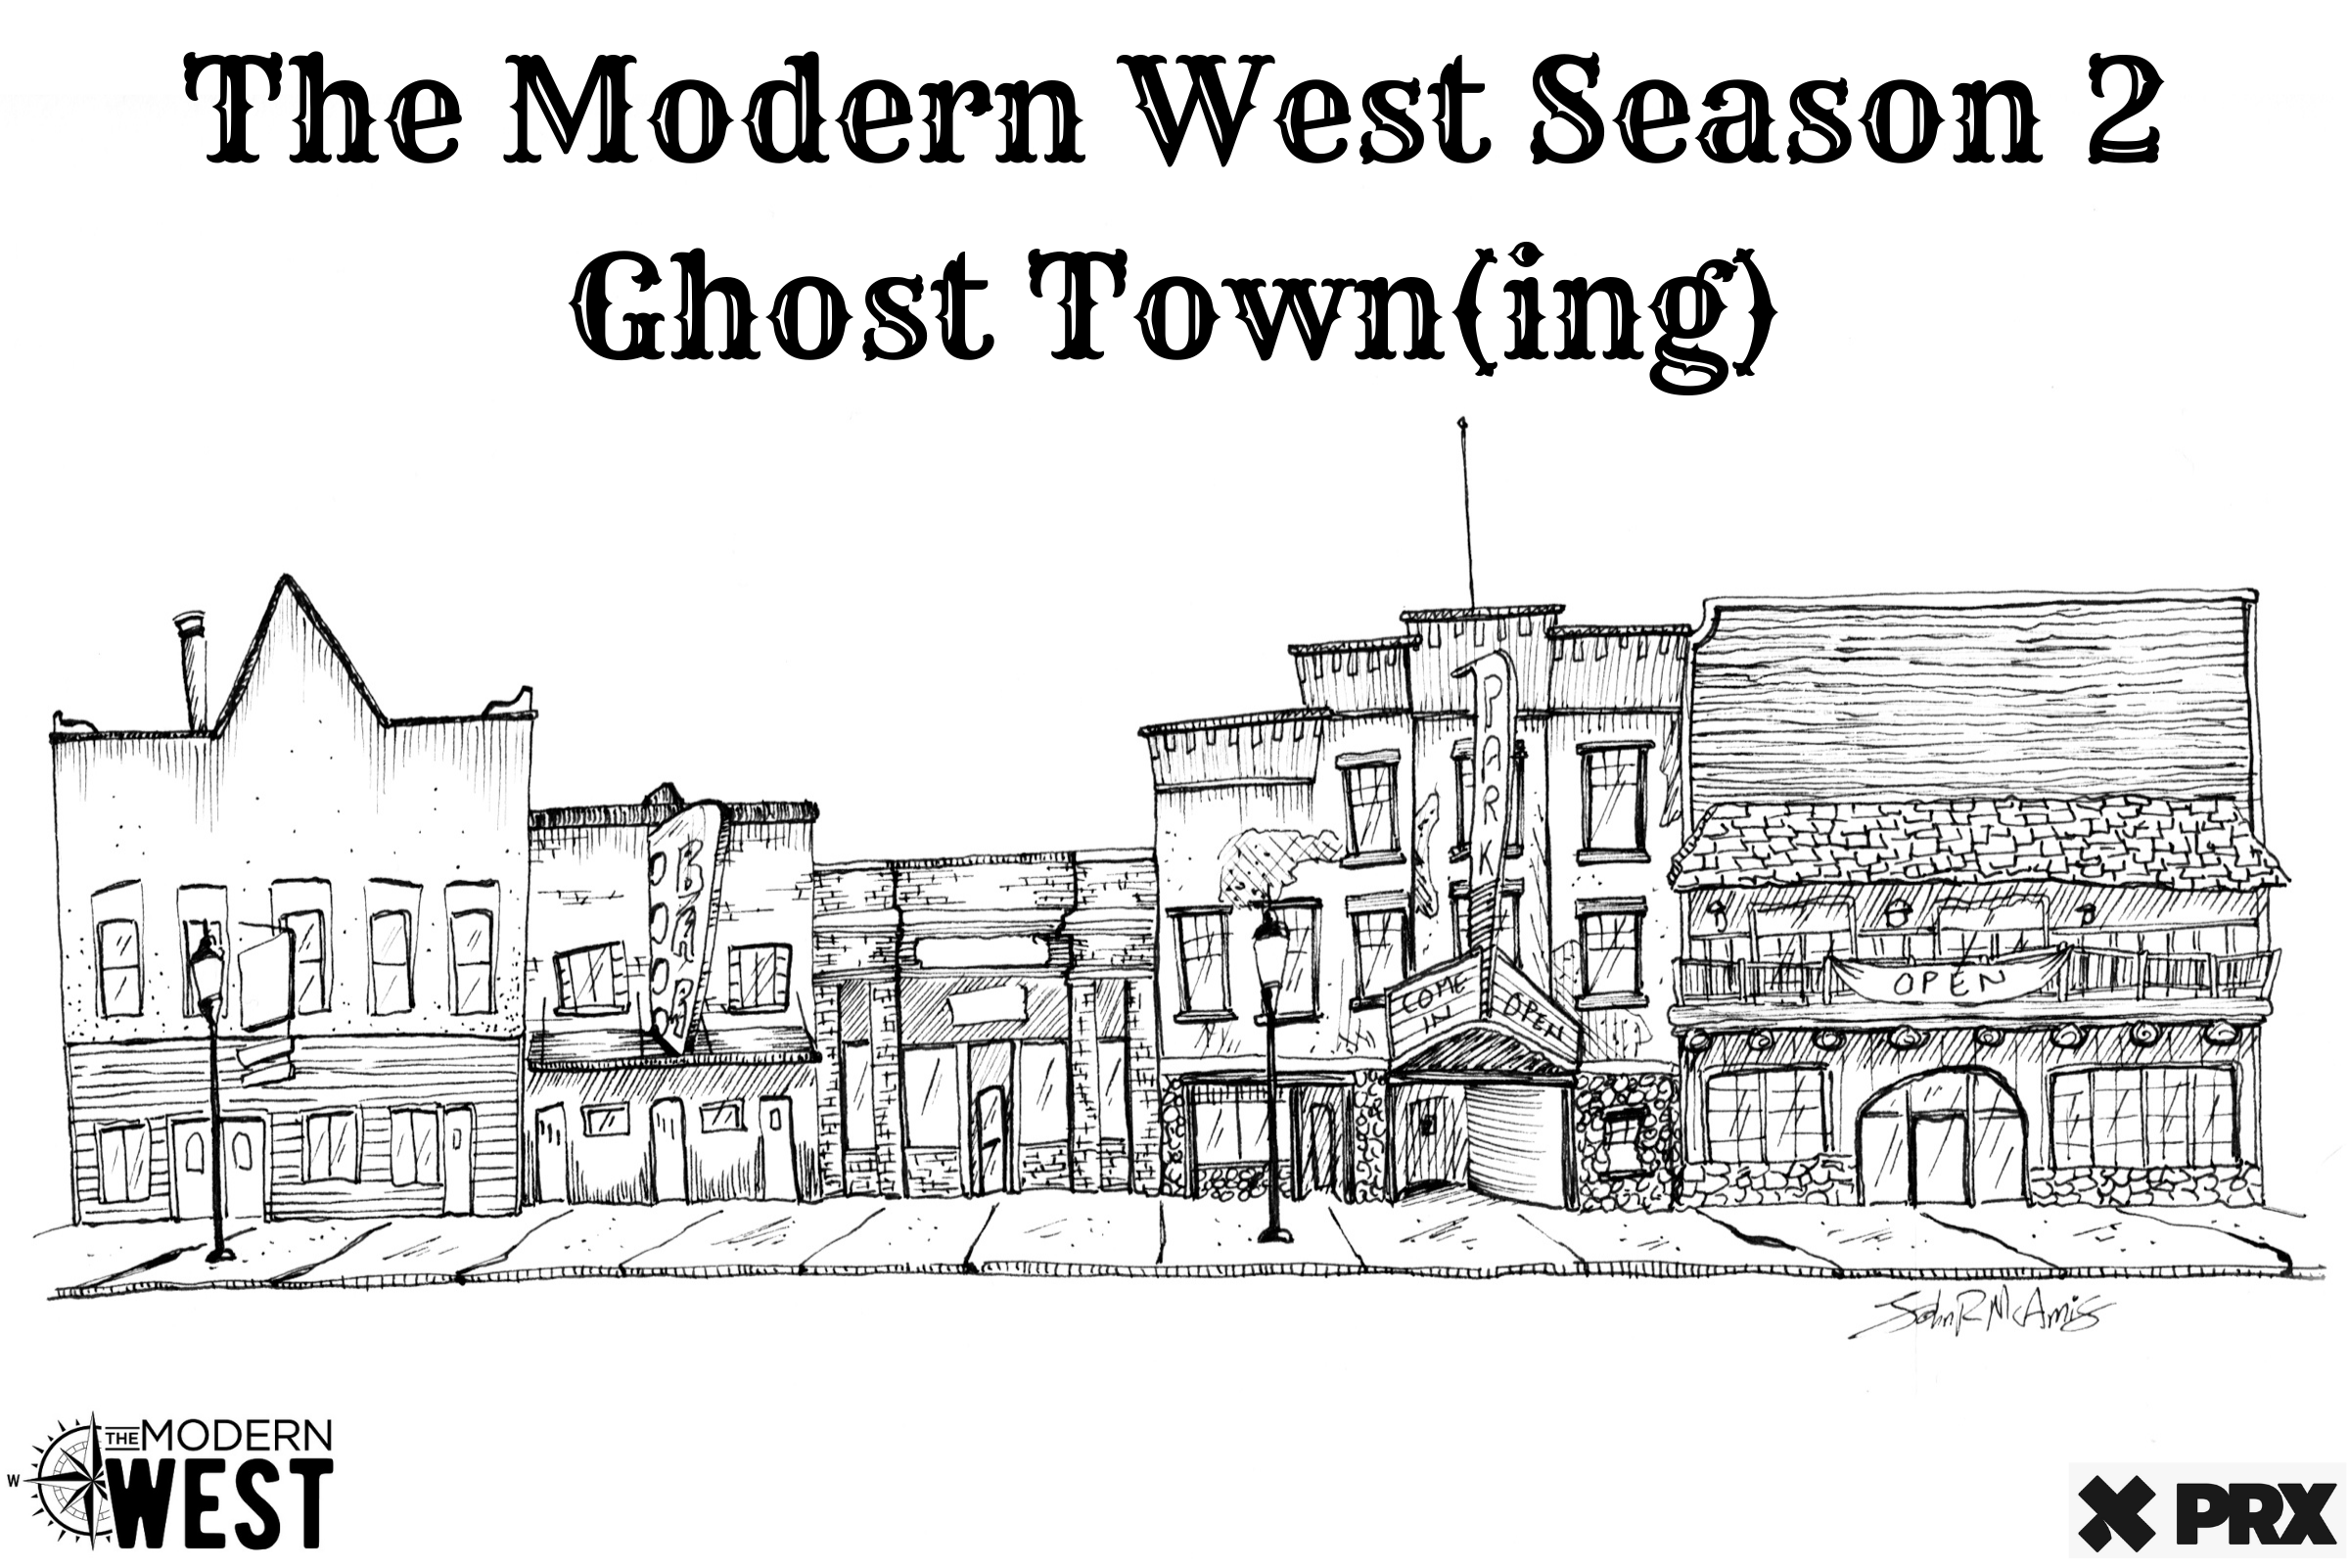 The Modern West Season 2 Cover Art